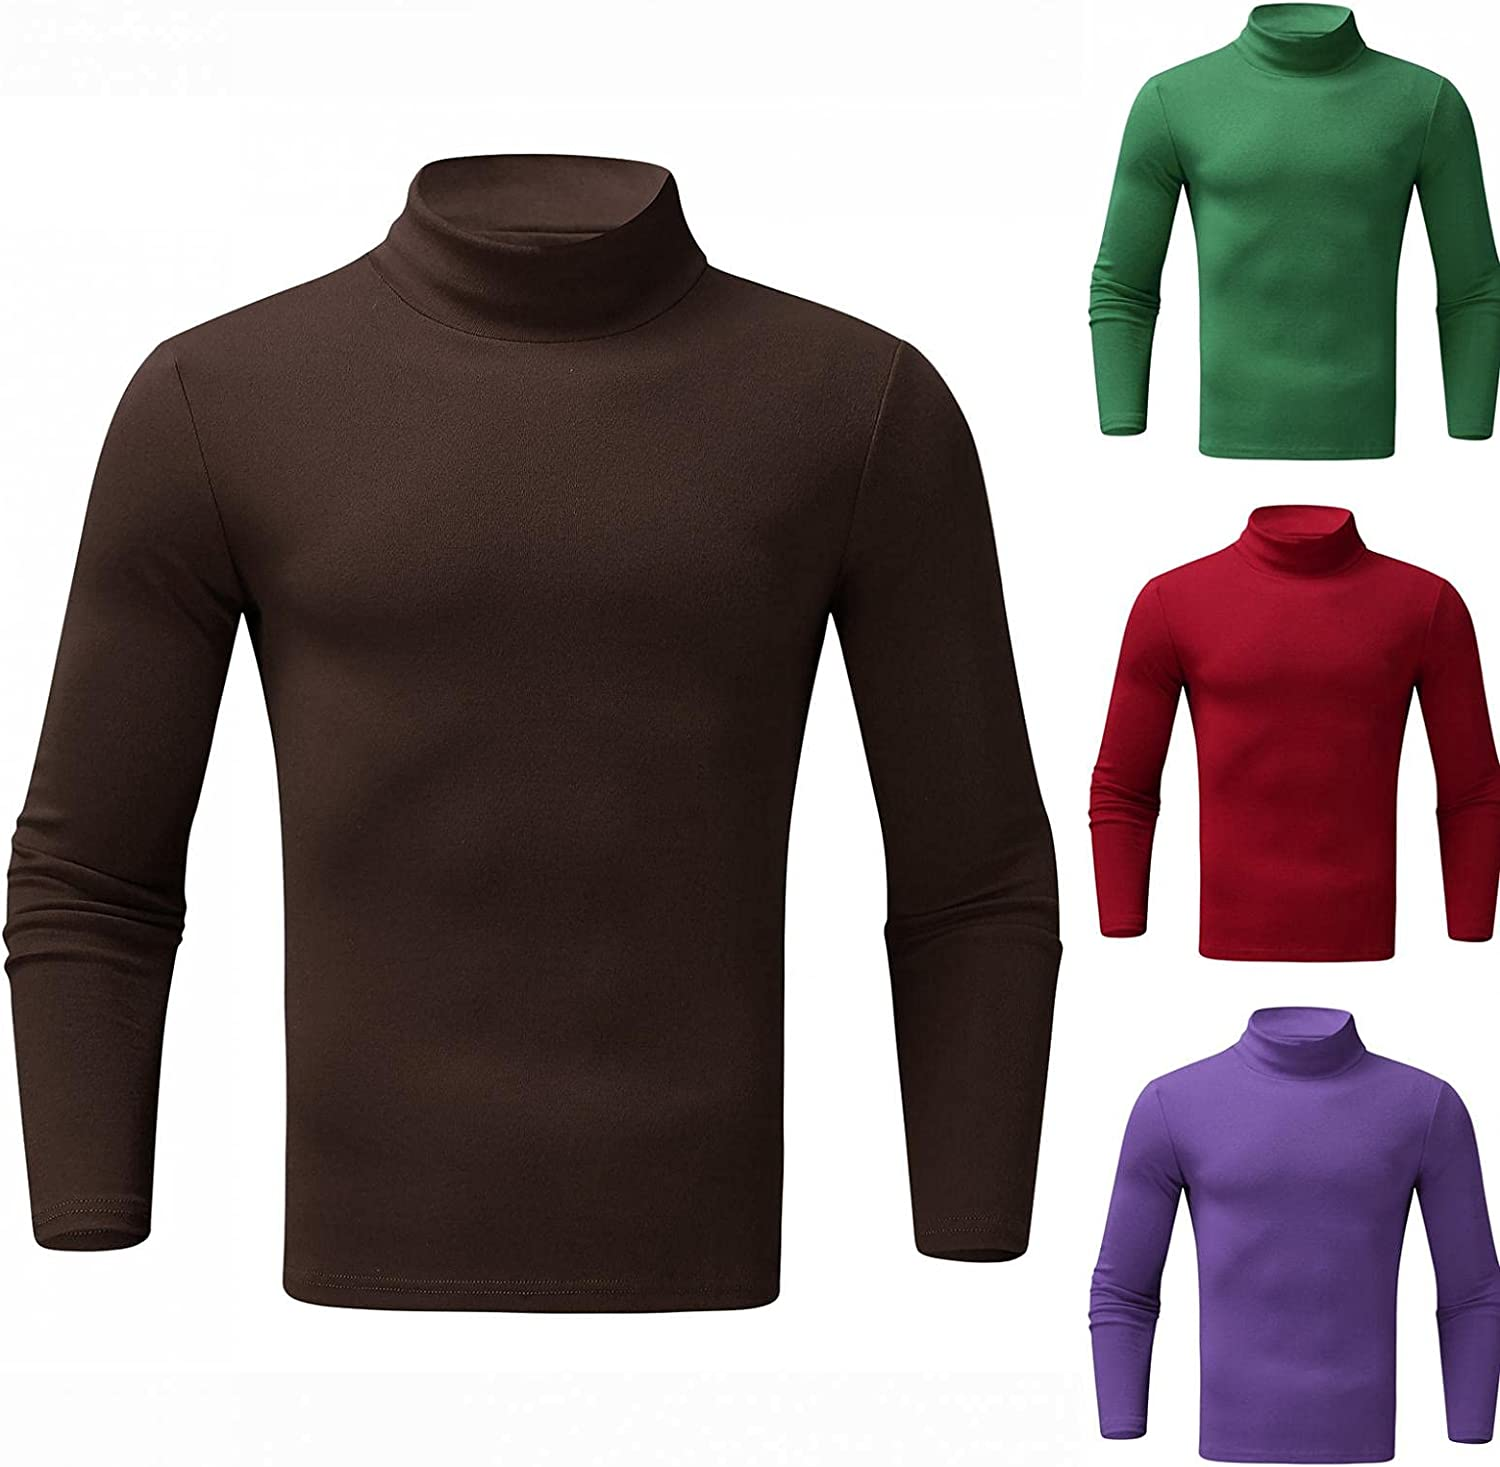 Mens Pullover Tops Solid Knitted Long Sleeeve Sweatershirts Casual Lightweight Thin Turtleneck Blouse